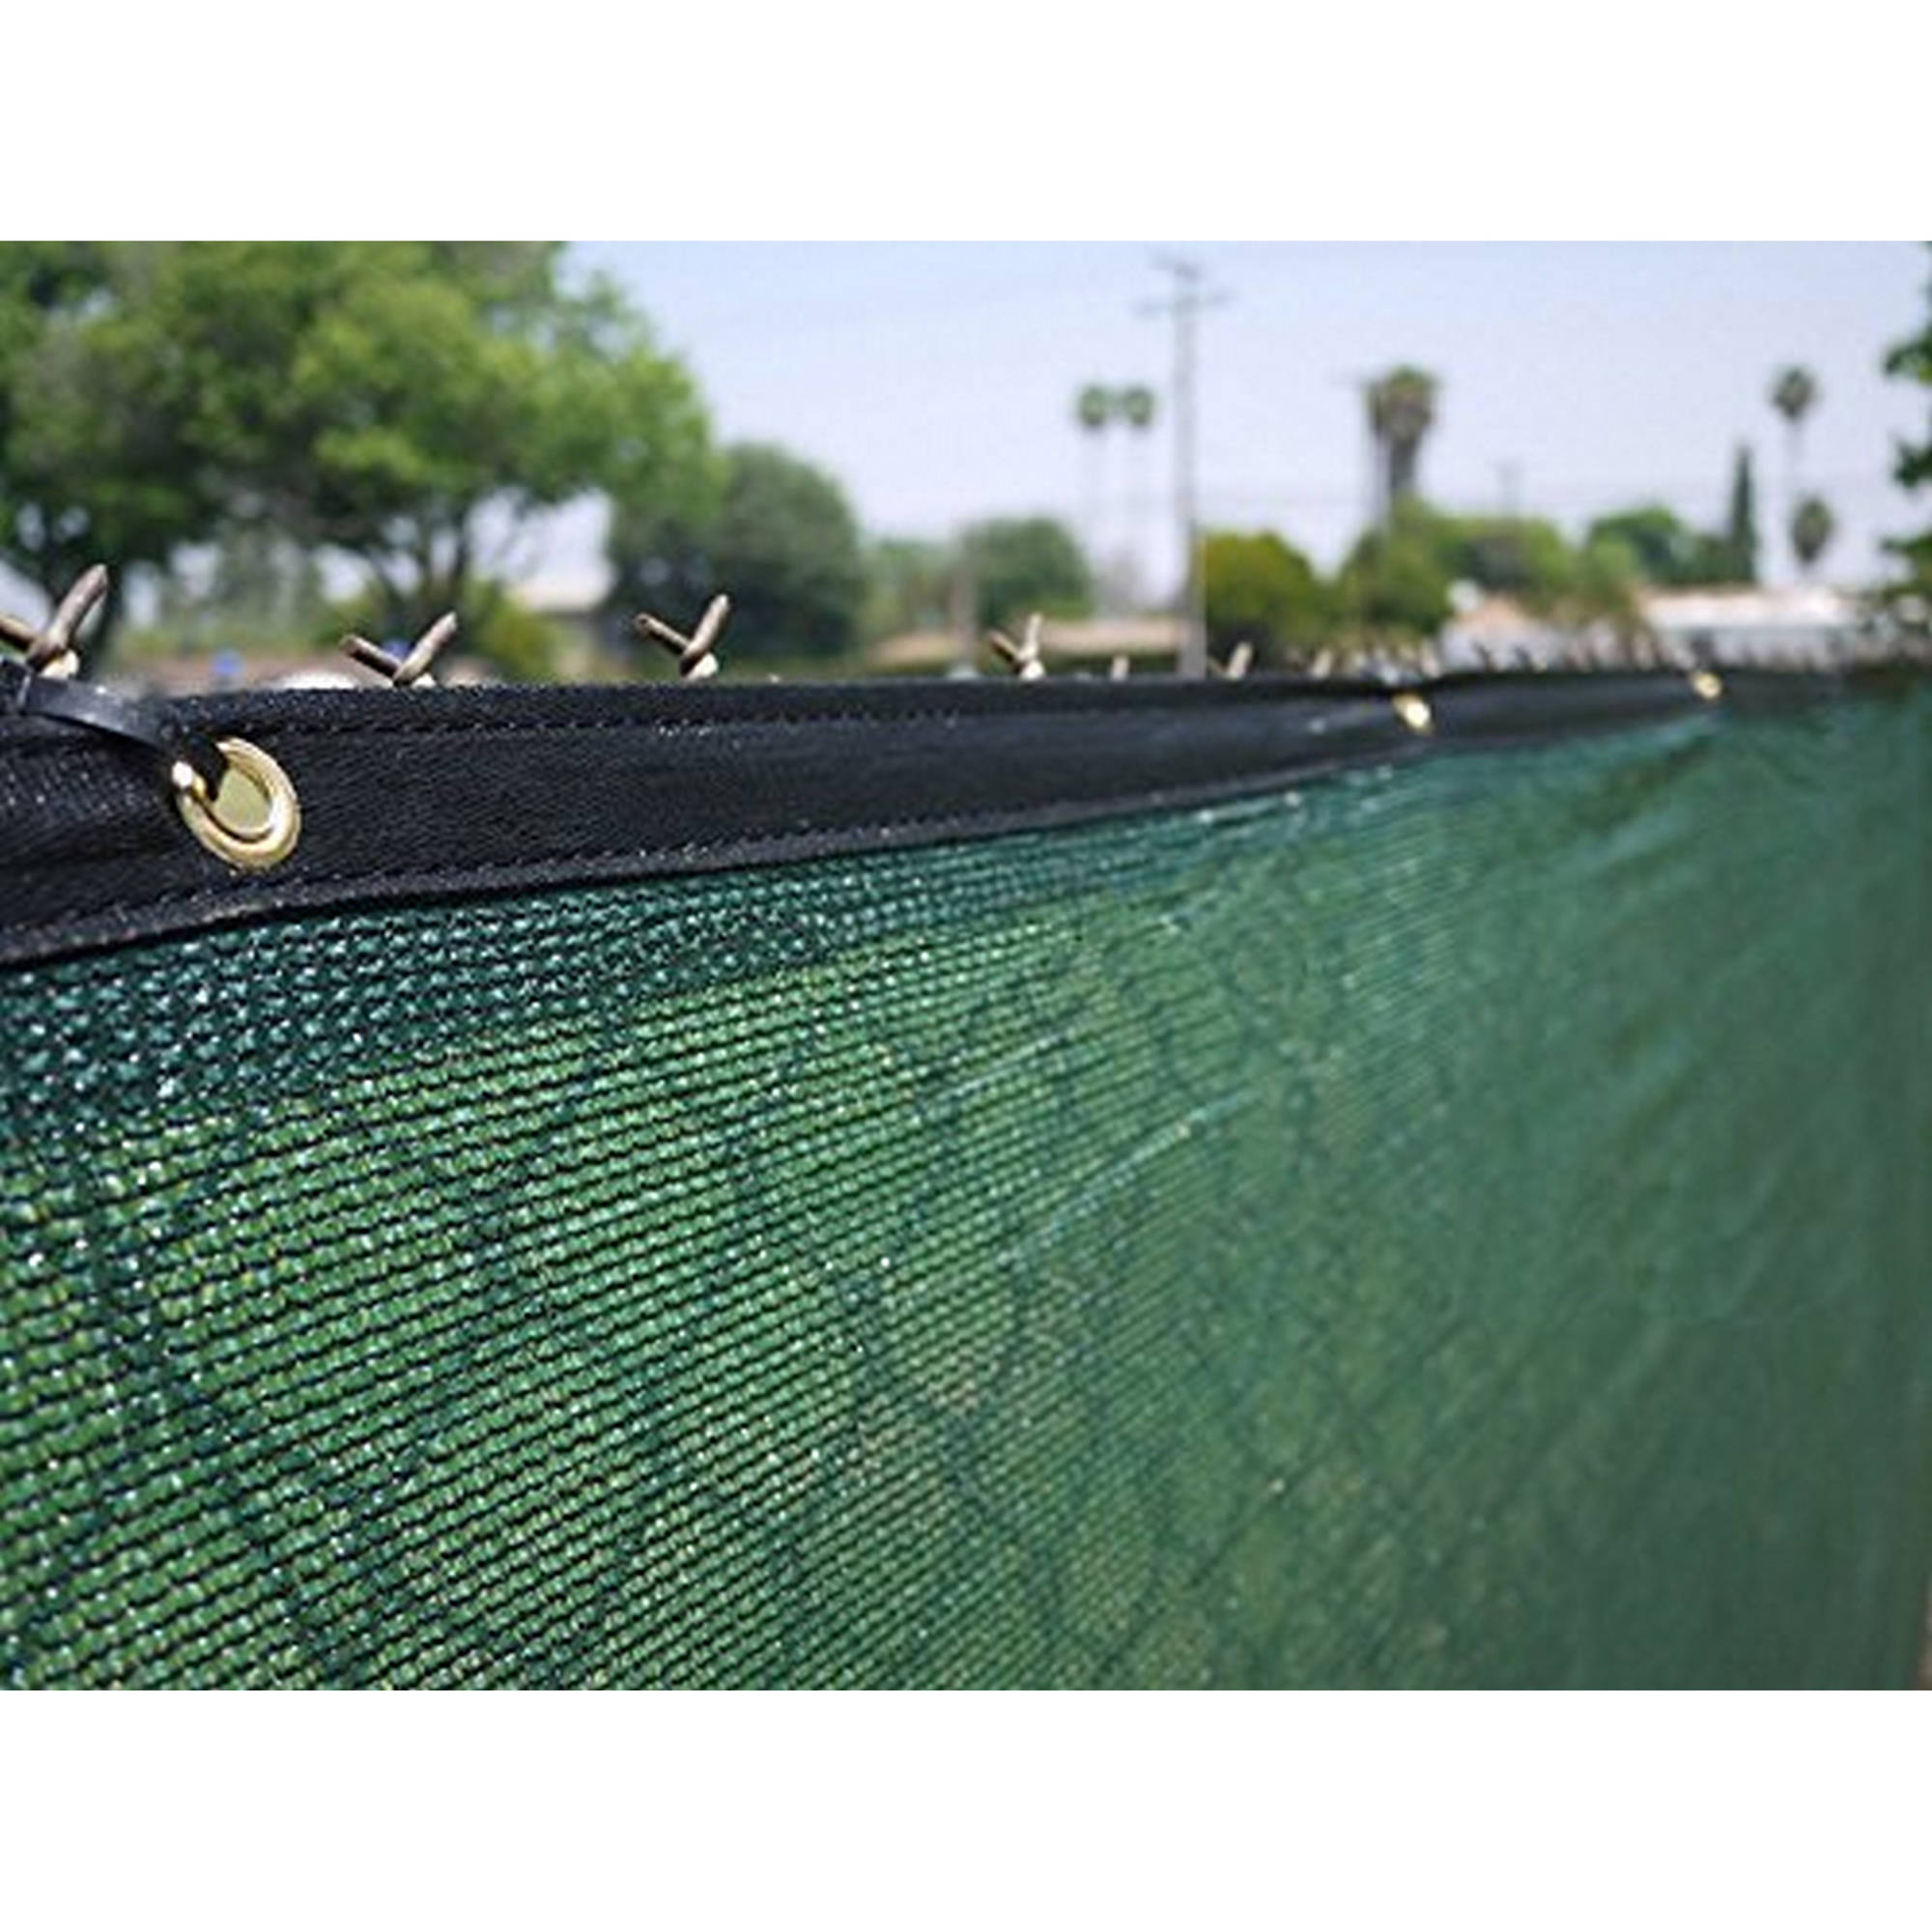 Aleko 6' x 150' (Aluminum Eye) Dark Green Fence Privacy Screen Windscreen Shade Cover by Decorative Fences